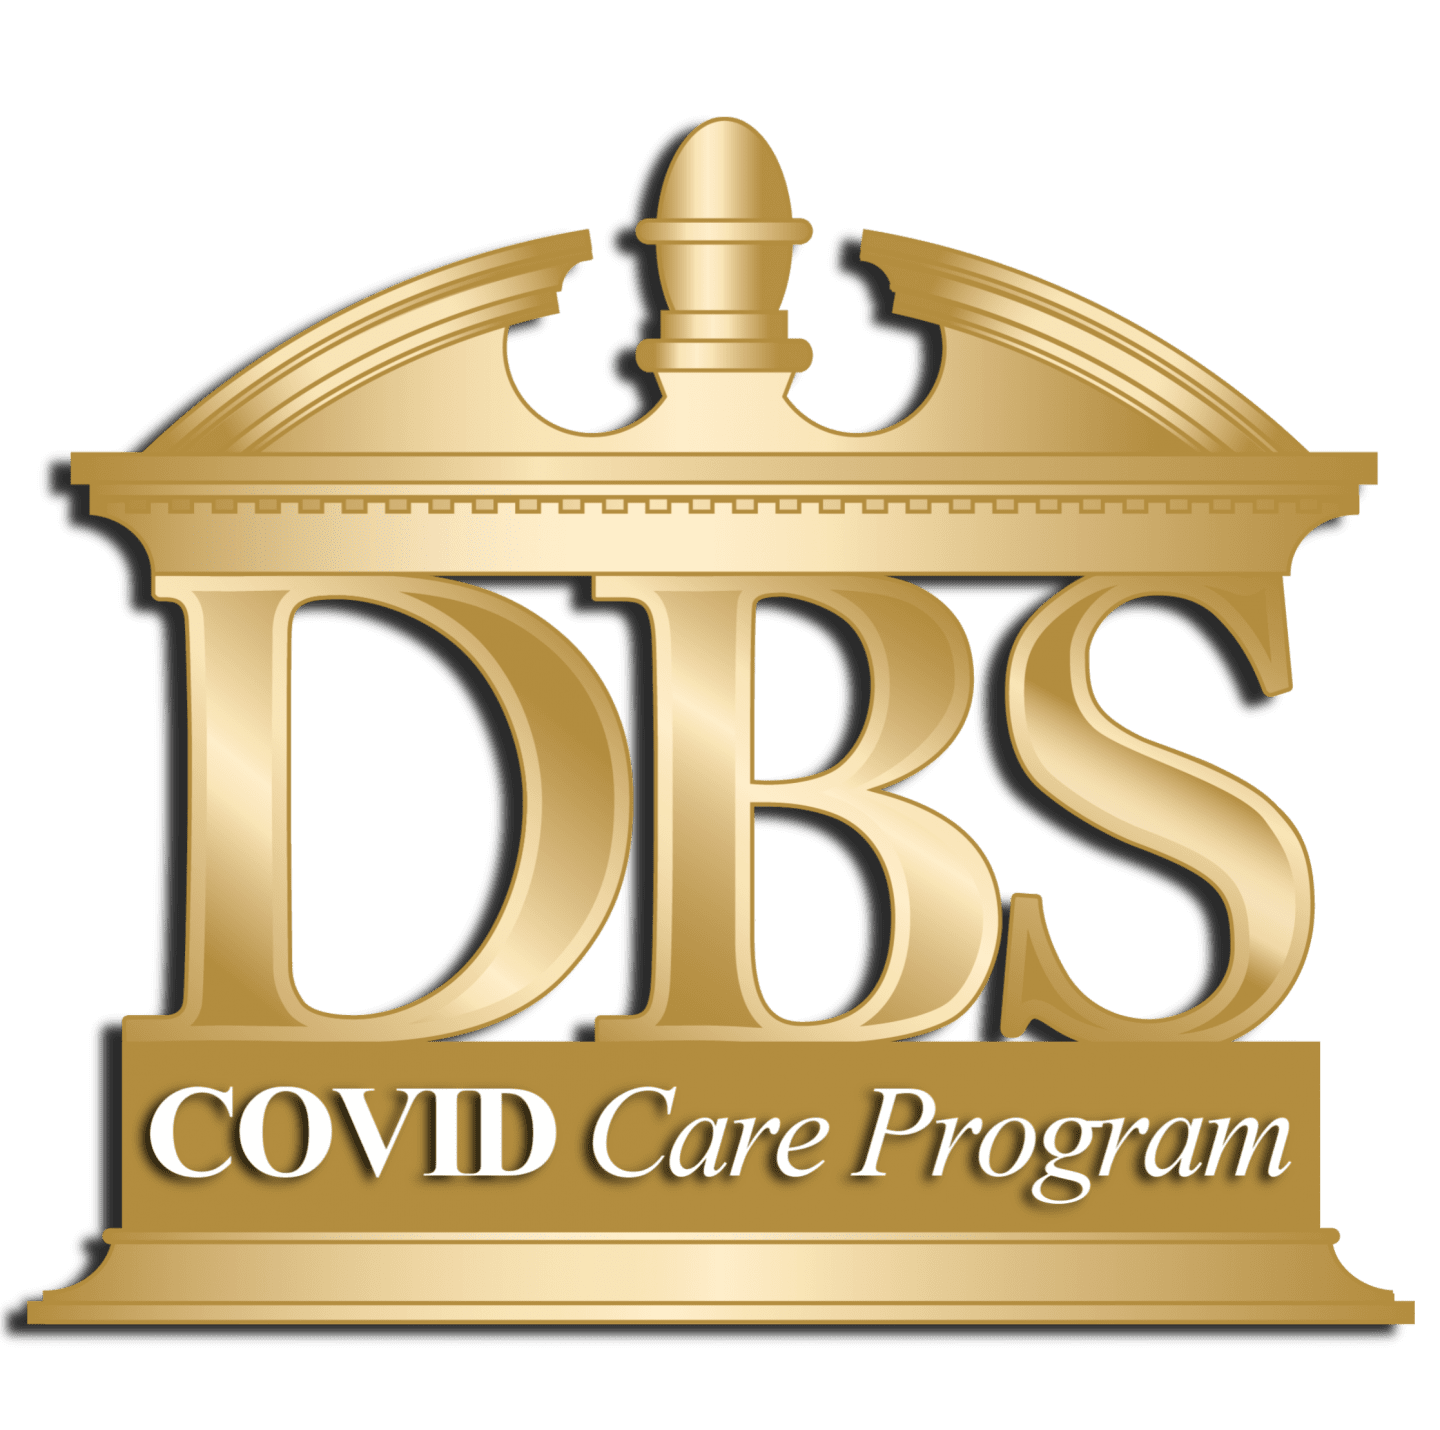 DBS GOLD LOGO - COVID CARE PROGRAM